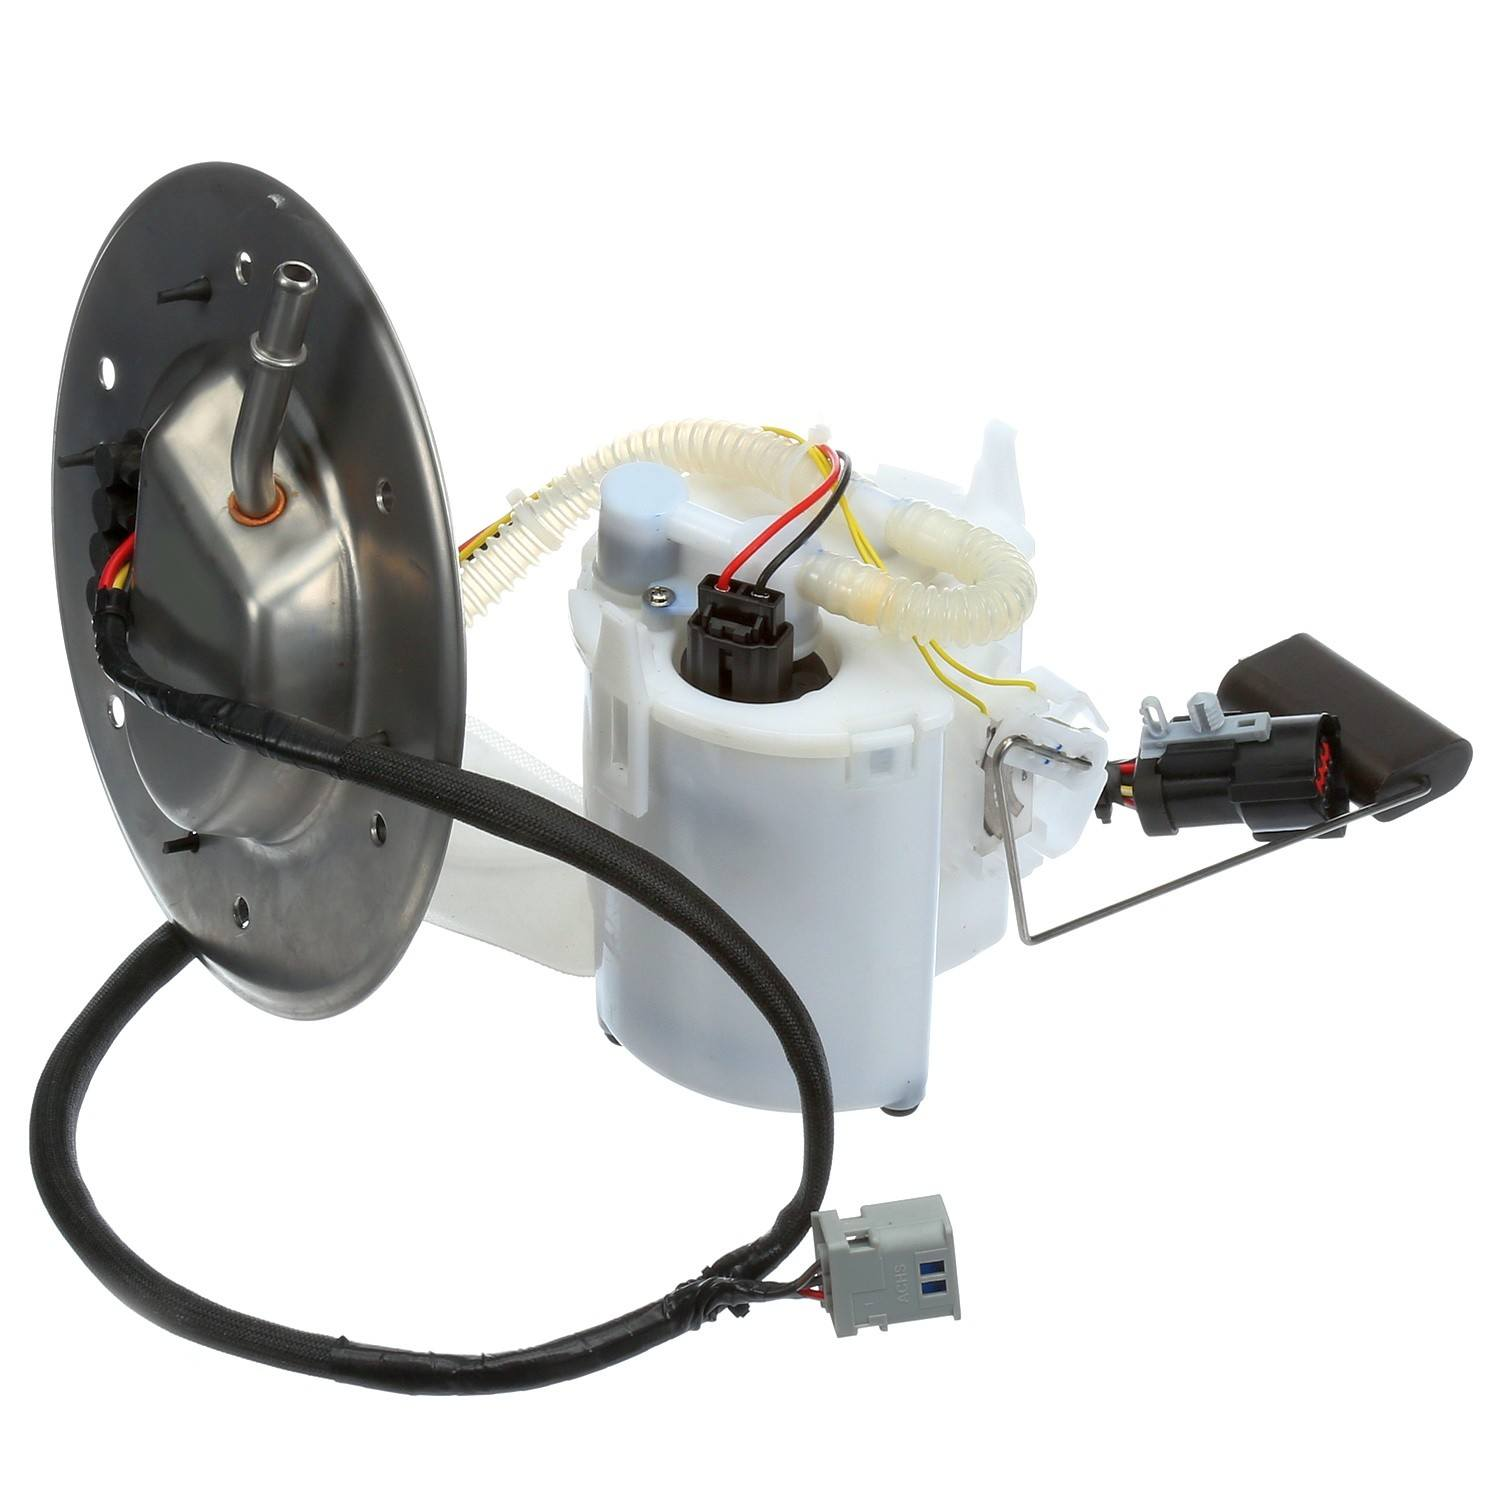 2001 mustang fuel filter location 2001 mustang fuel filter assembly fuel pump module assembly fits 2001-2004 ford mustang ... #3